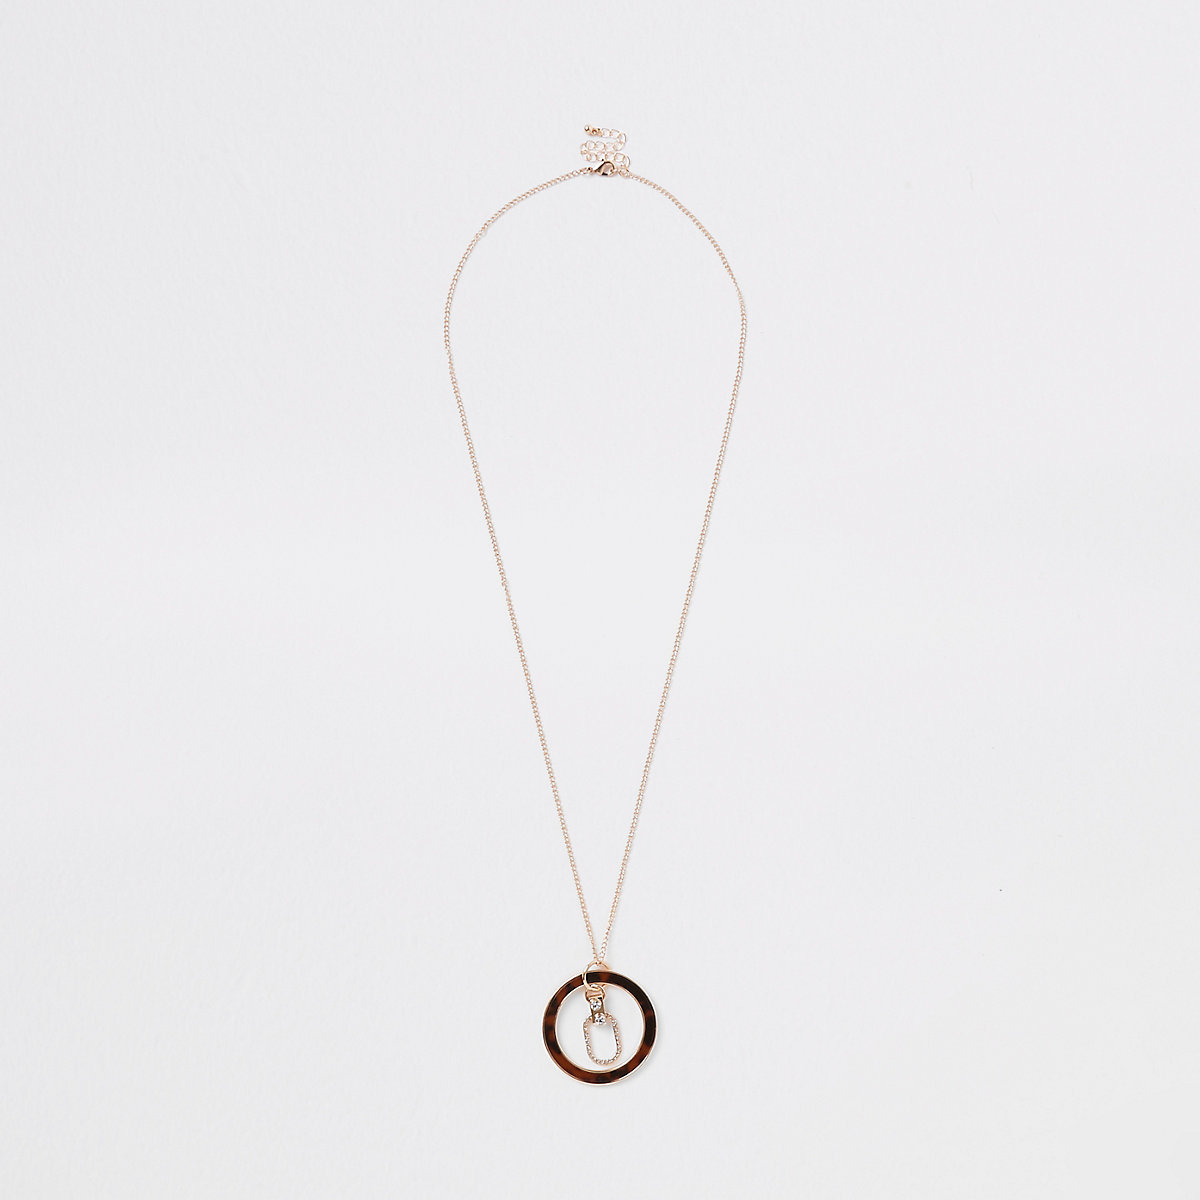 Gold color tortoise shell circle necklace